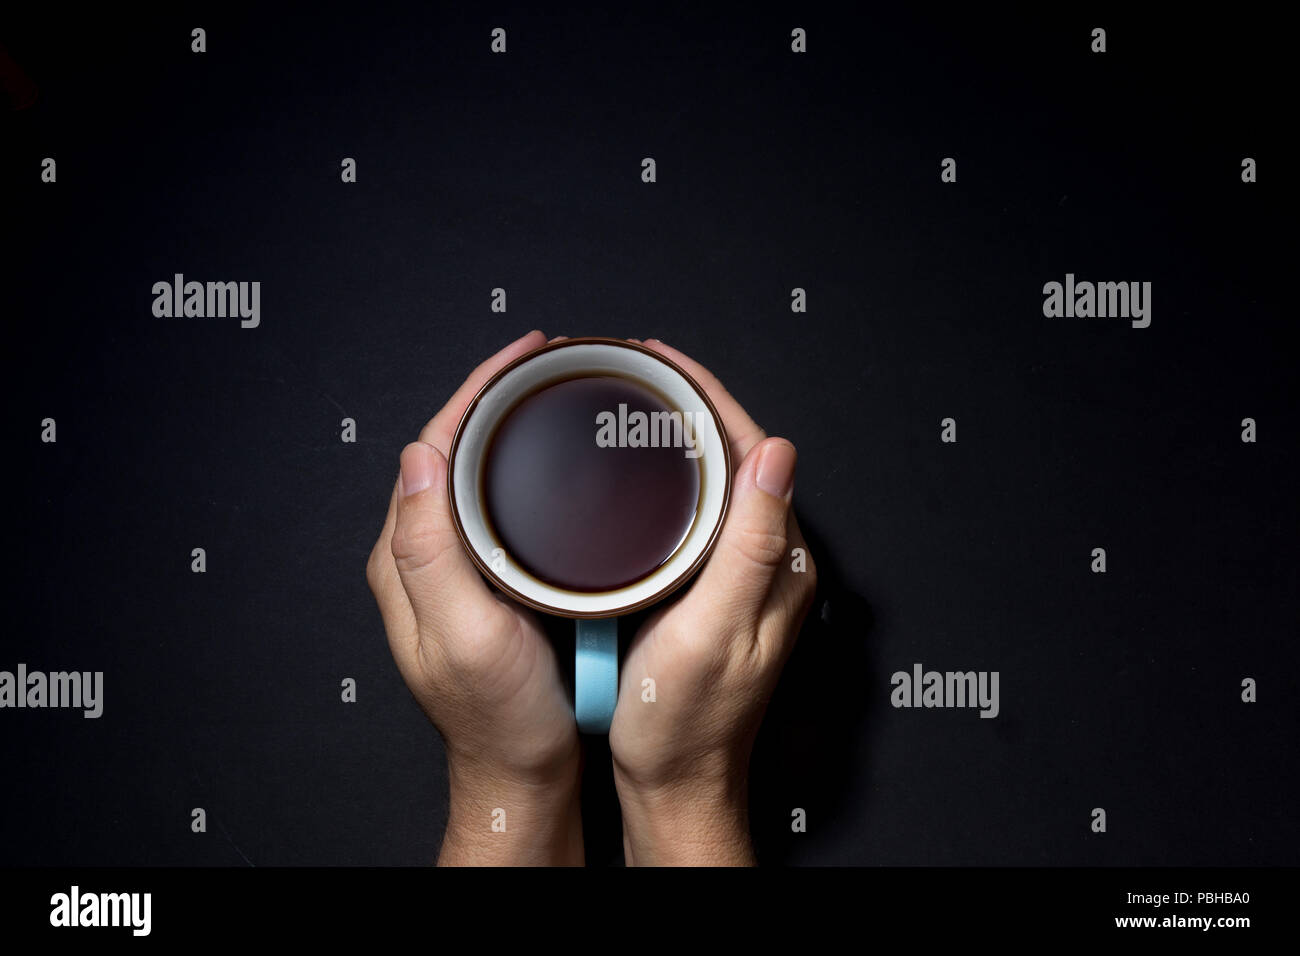 cup in palm on the black background - Stock Image